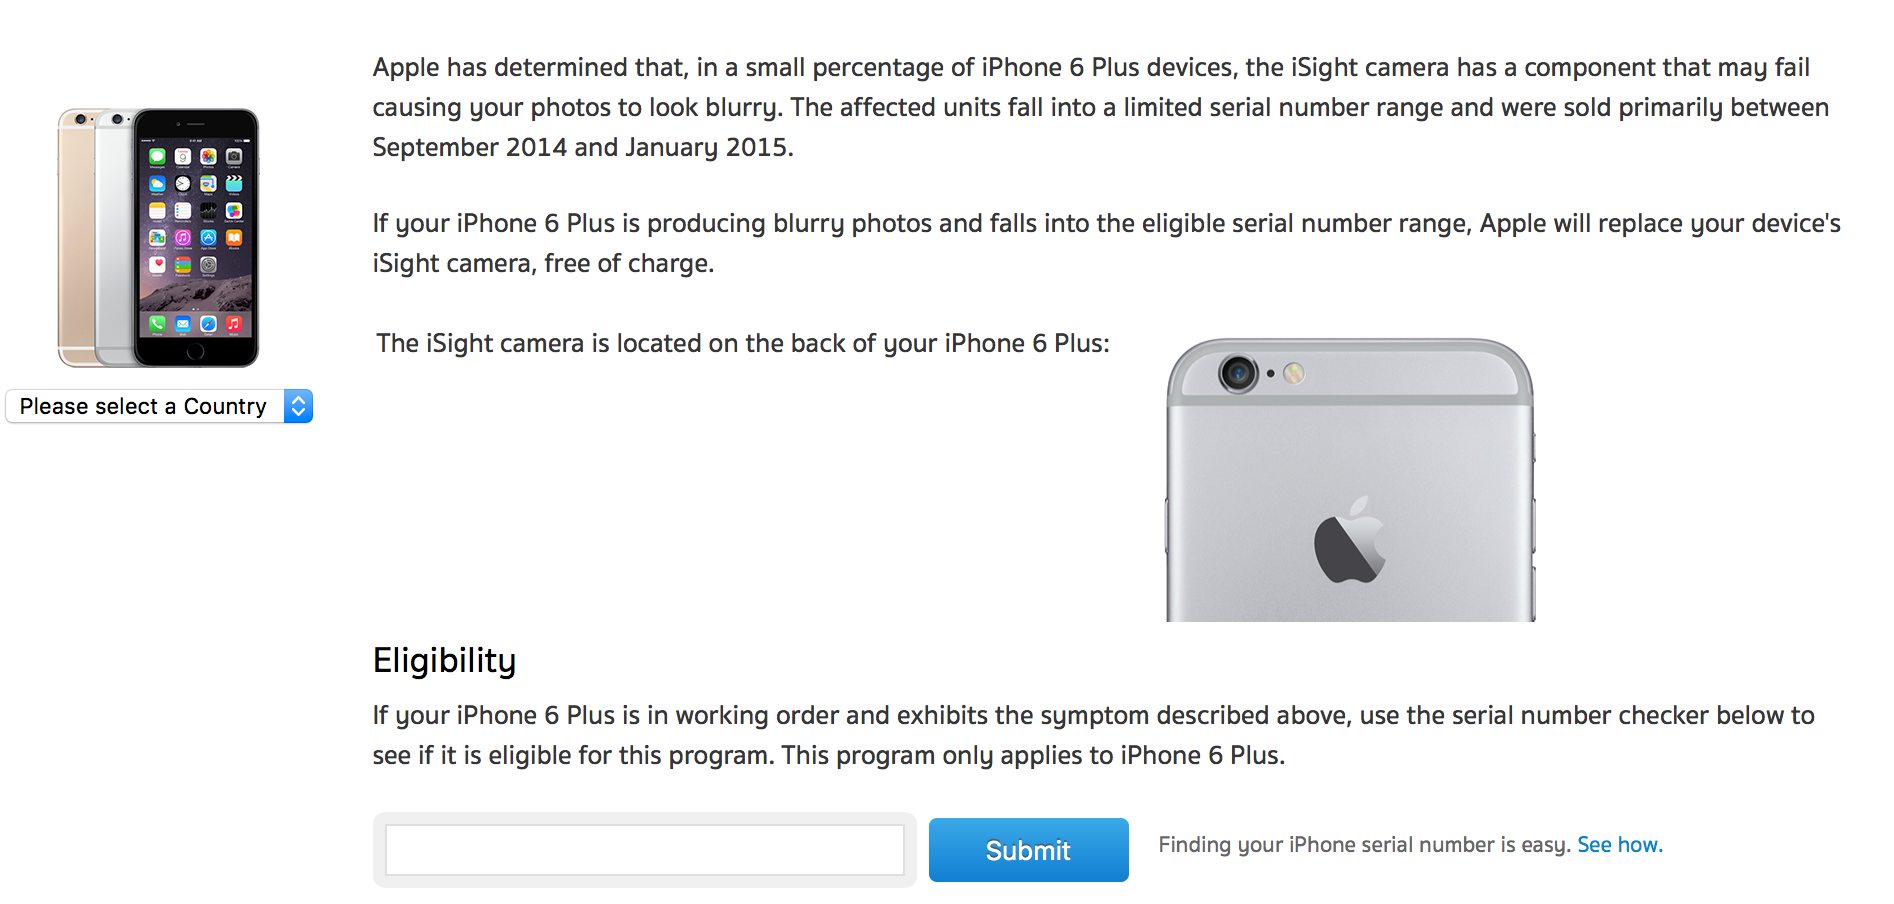 iSight Camera Replacement Program for iPhone 6 Plus